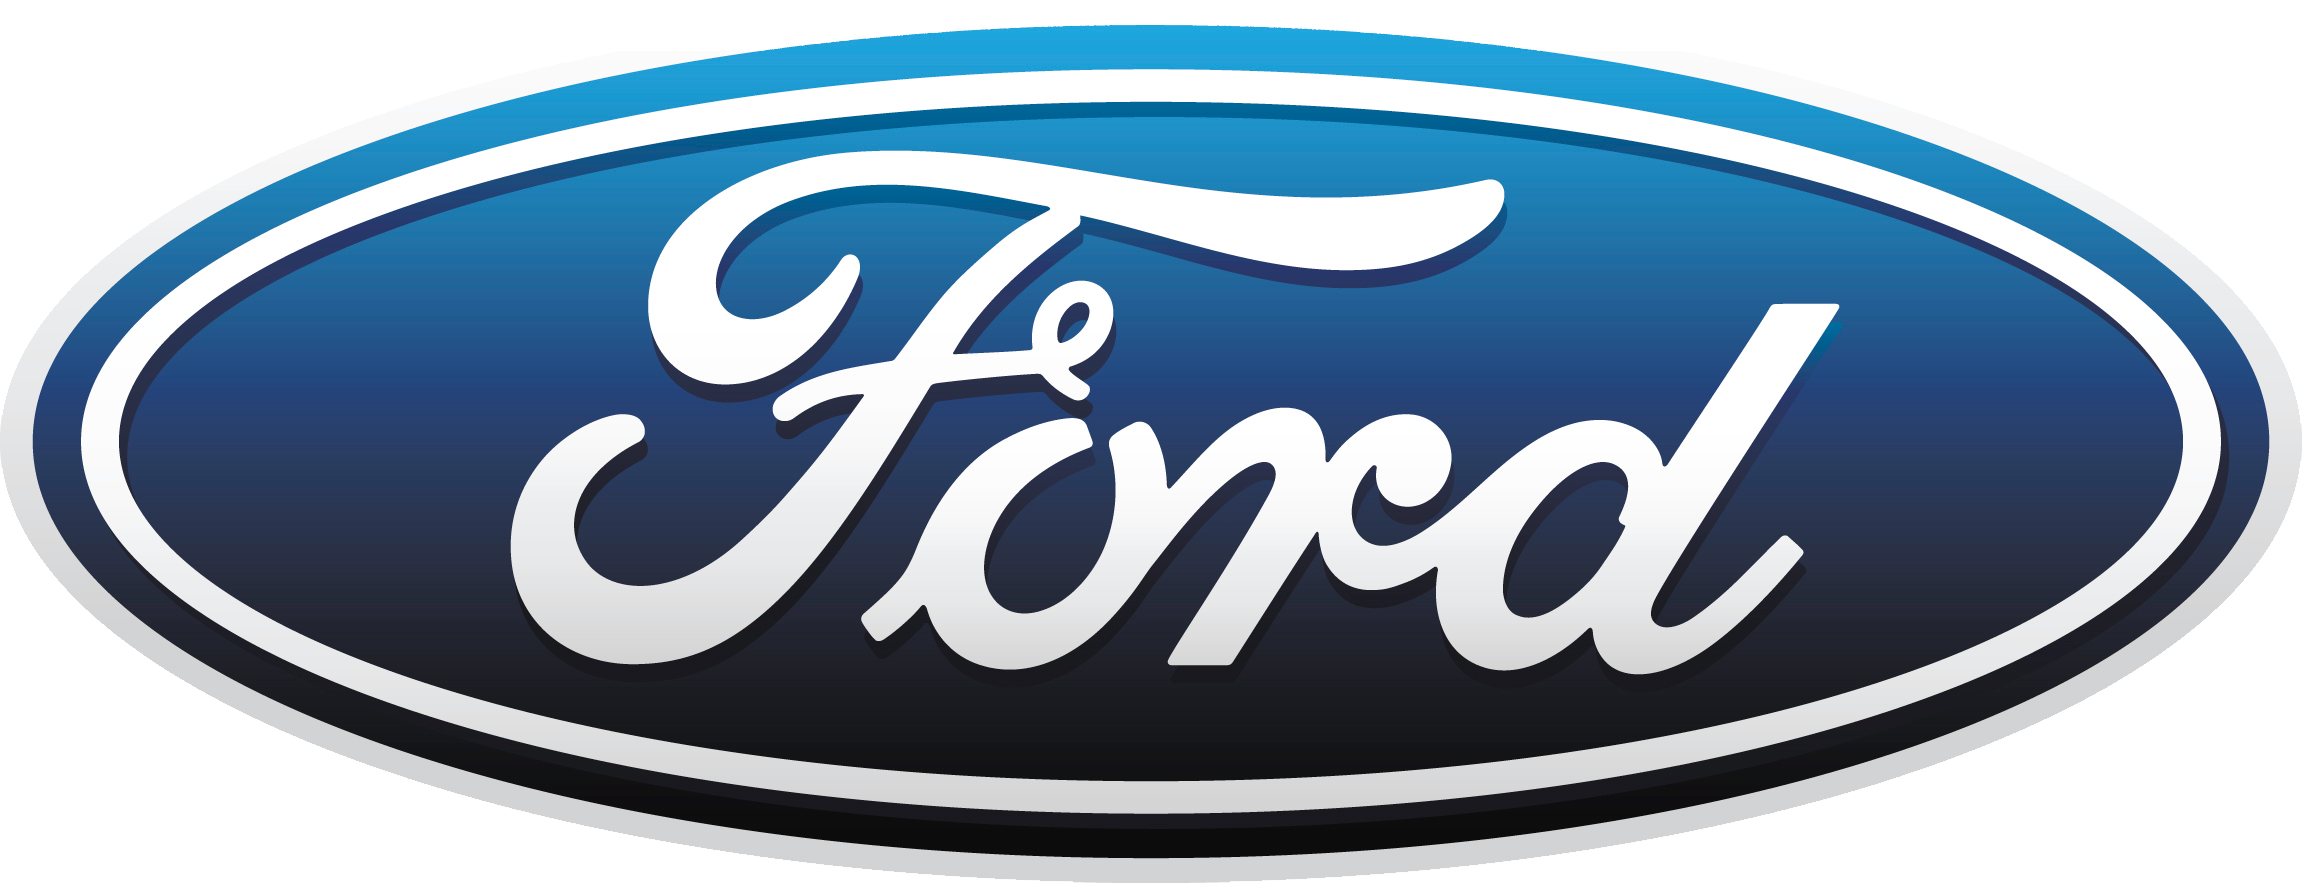 Ford logo clipart png royalty free library Free Ford Cliparts, Download Free Clip Art, Free Clip Art on Clipart ... png royalty free library